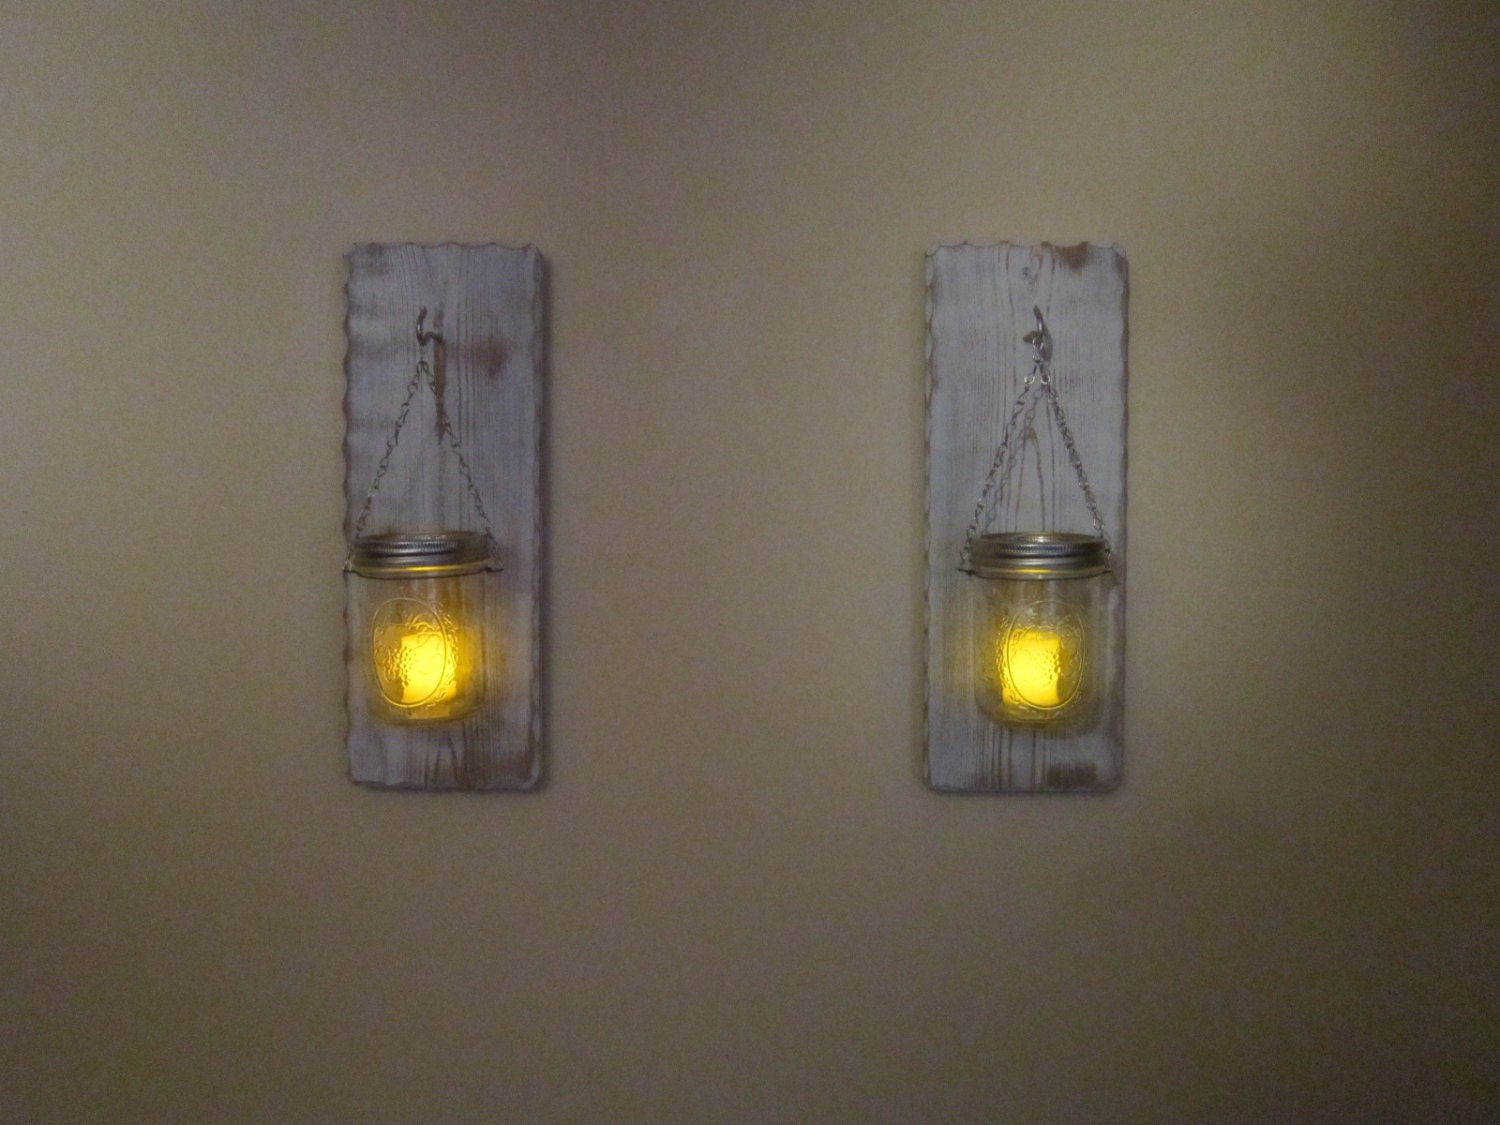 Rustic Wall Sconces For Candles : Rustic Candle Wall Sconces Candle Holders by BriarRidgeCreation